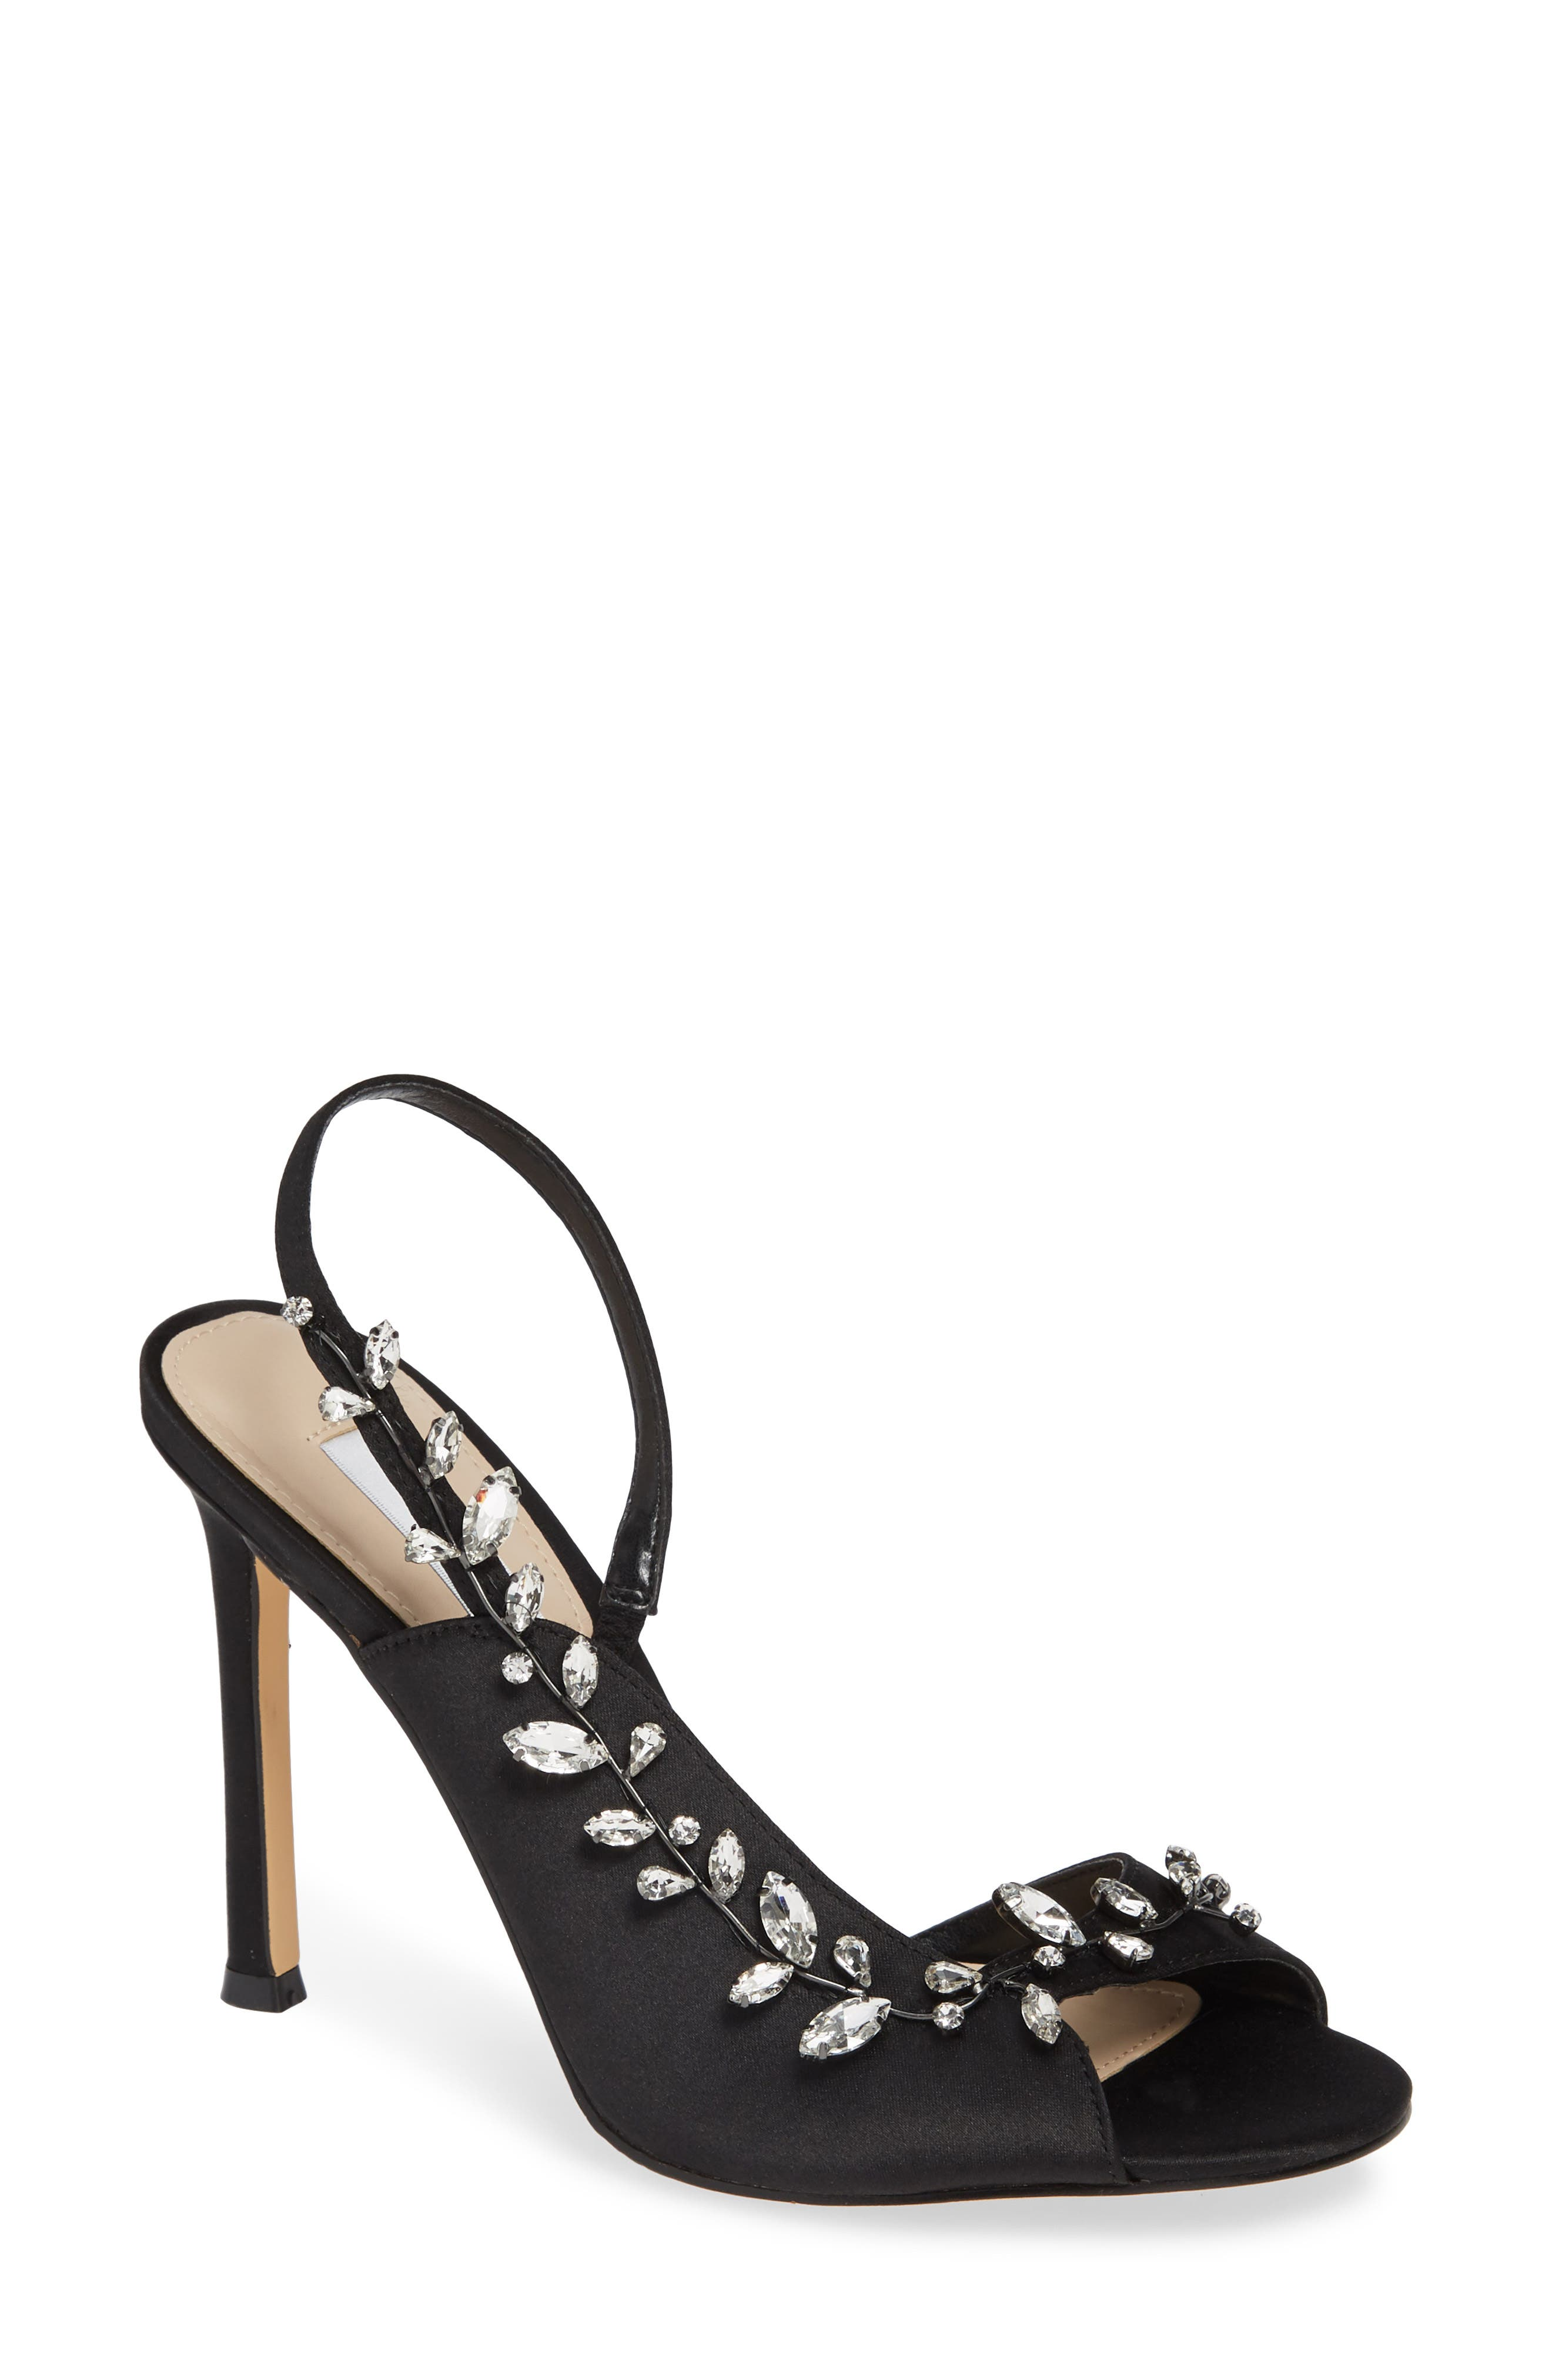 Deanna Embellished Sandal,                             Main thumbnail 1, color,                             BLACK SATIN